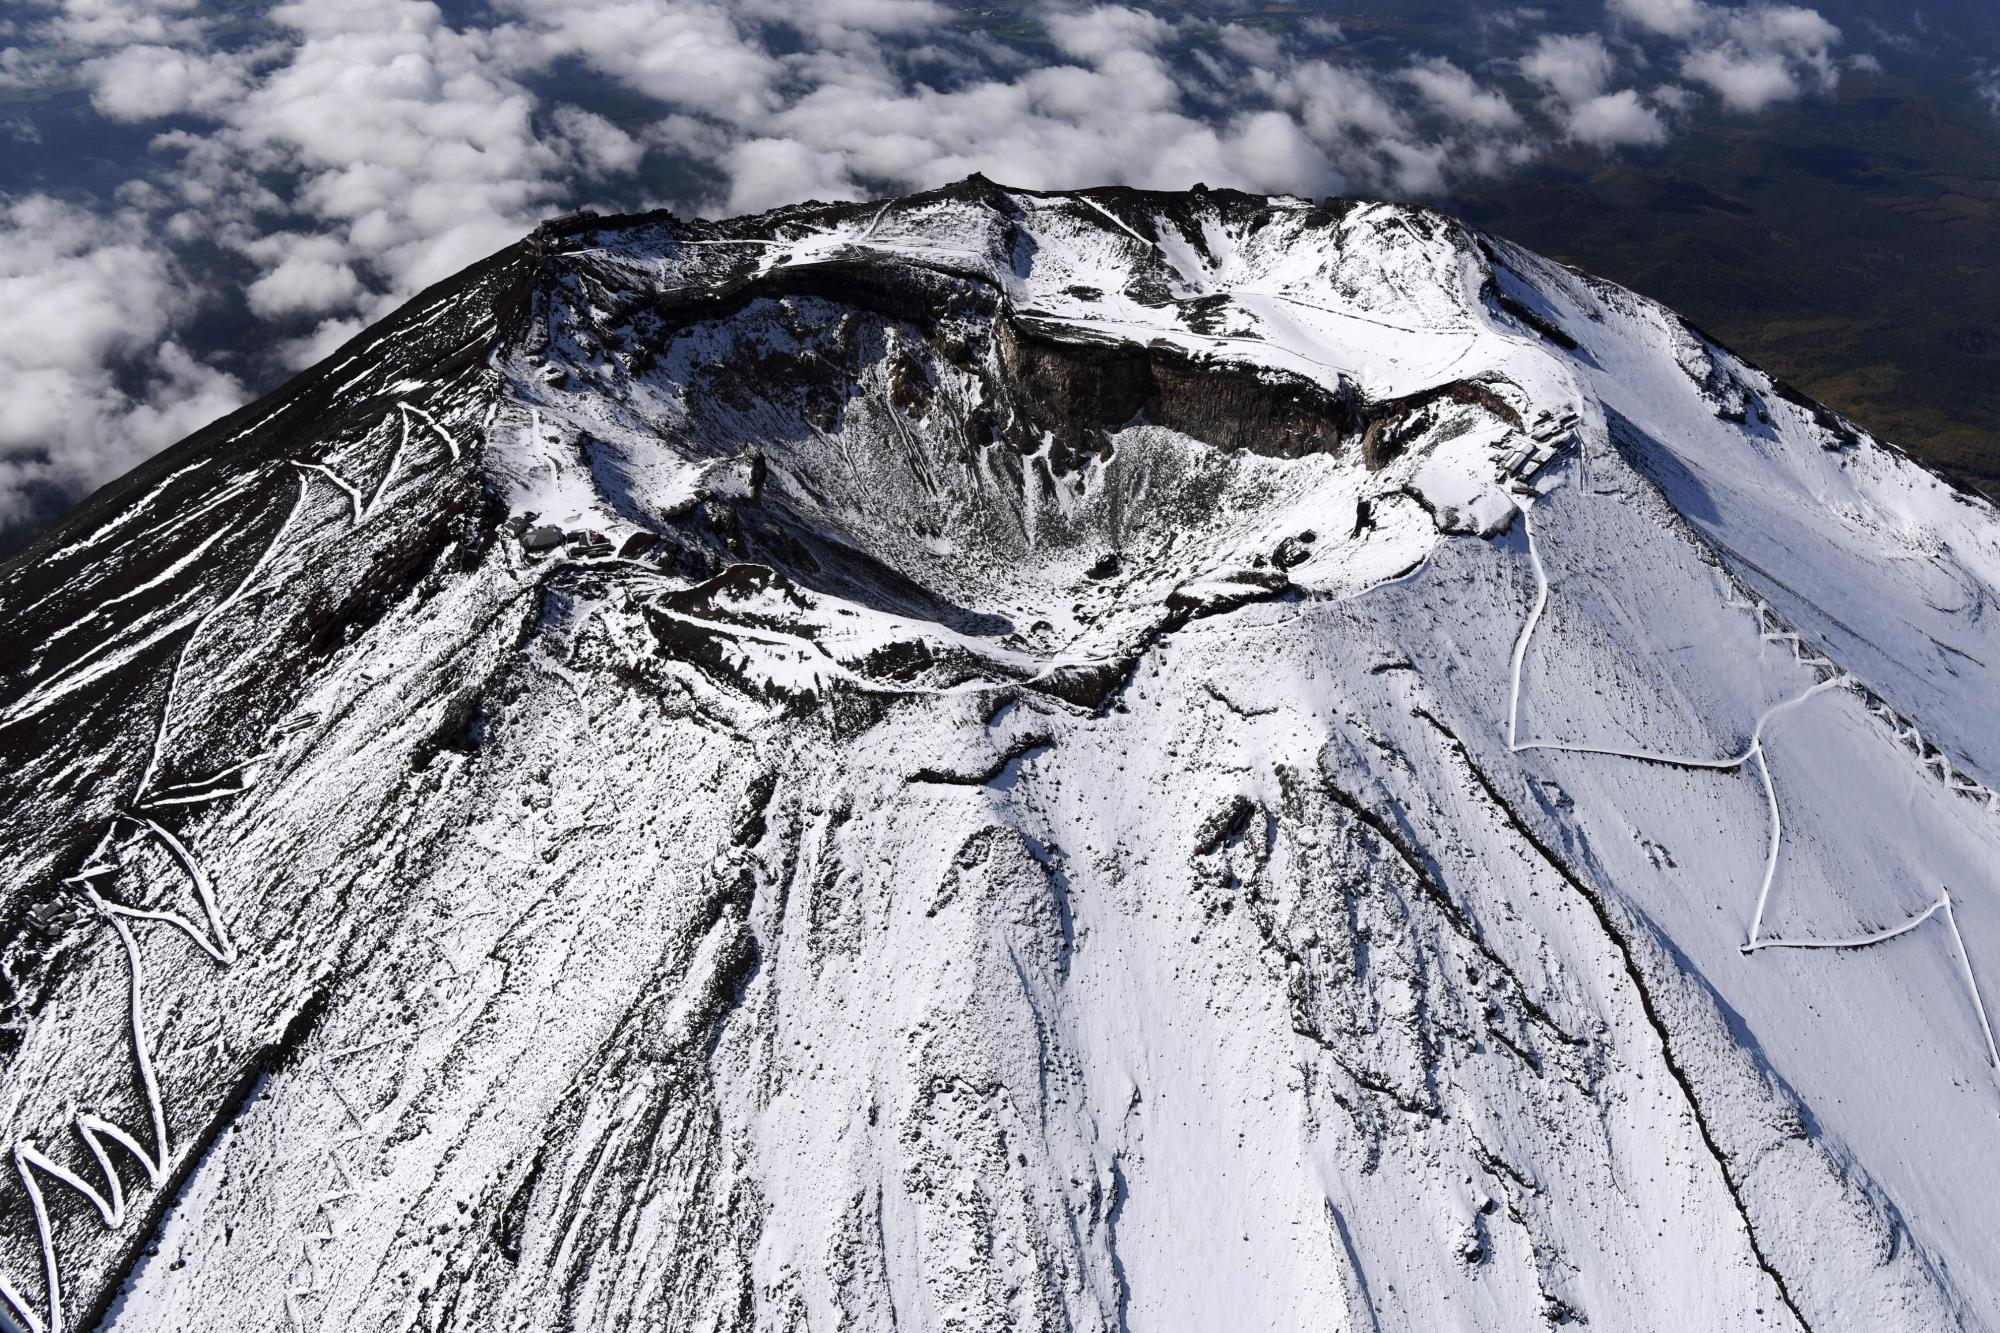 Mount Fuji's first snowcap of the season is seen on Oct. 23, a week before a 47-year-old man from Tokyo livestreamed his fatal fall from the summit. | KYODO